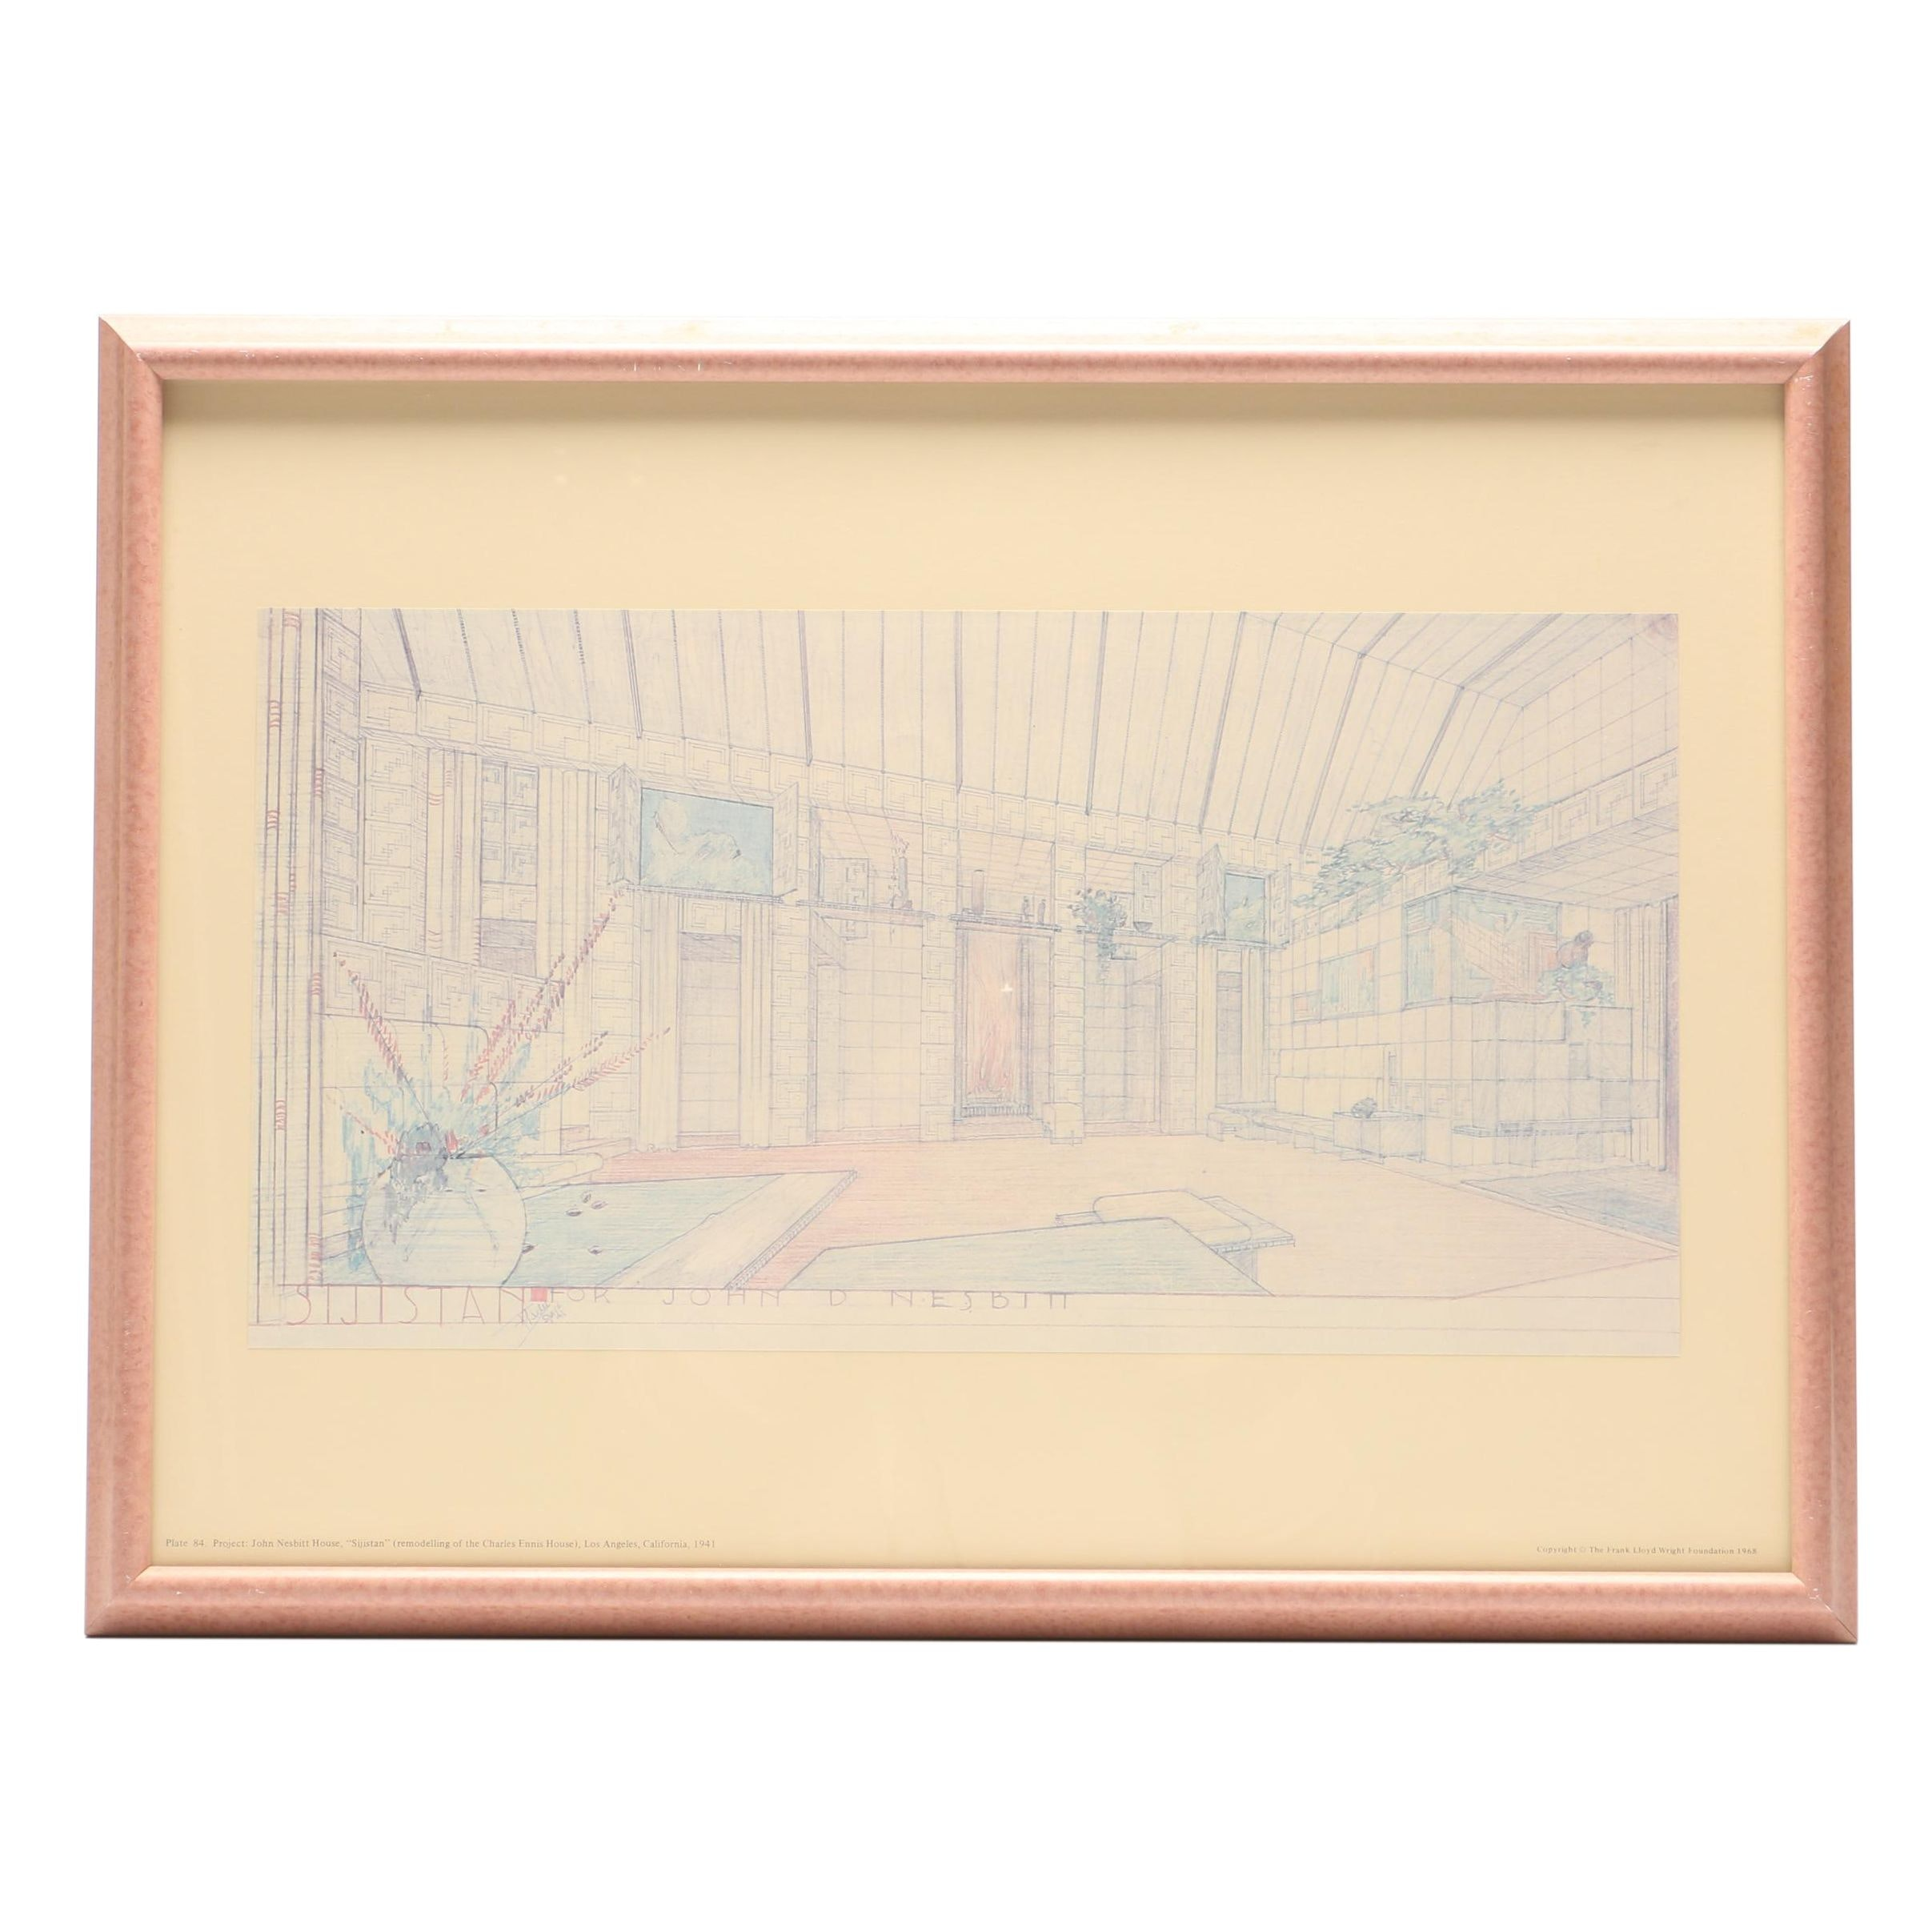 Frank Lloyd Wright Foundation Offset Lithograph Poster